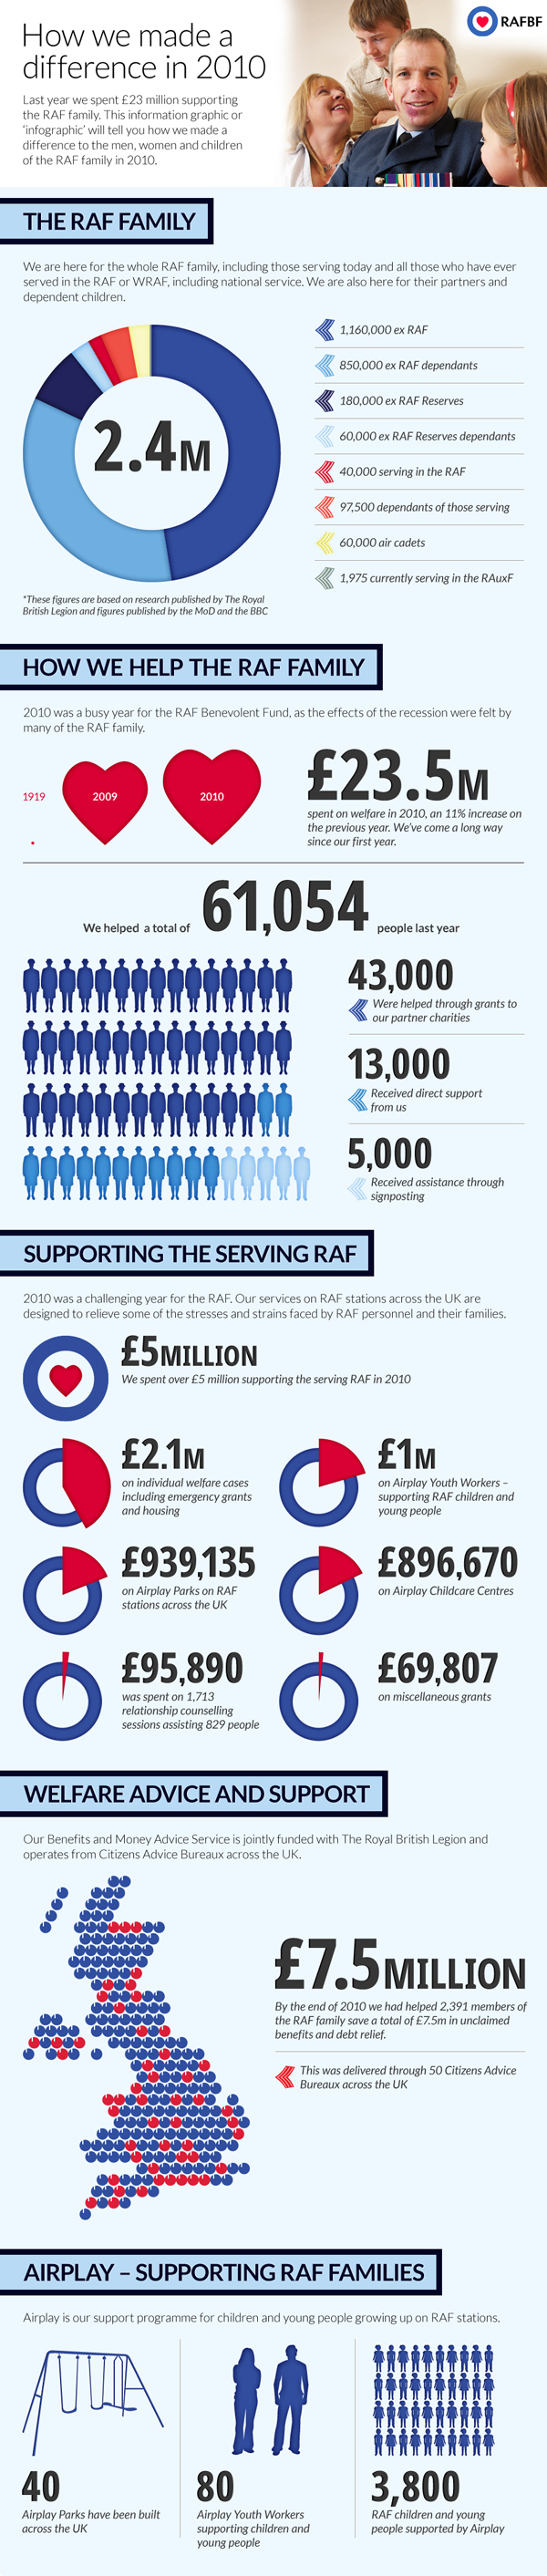 How the RAF Benevolent Fund Makes a Difference